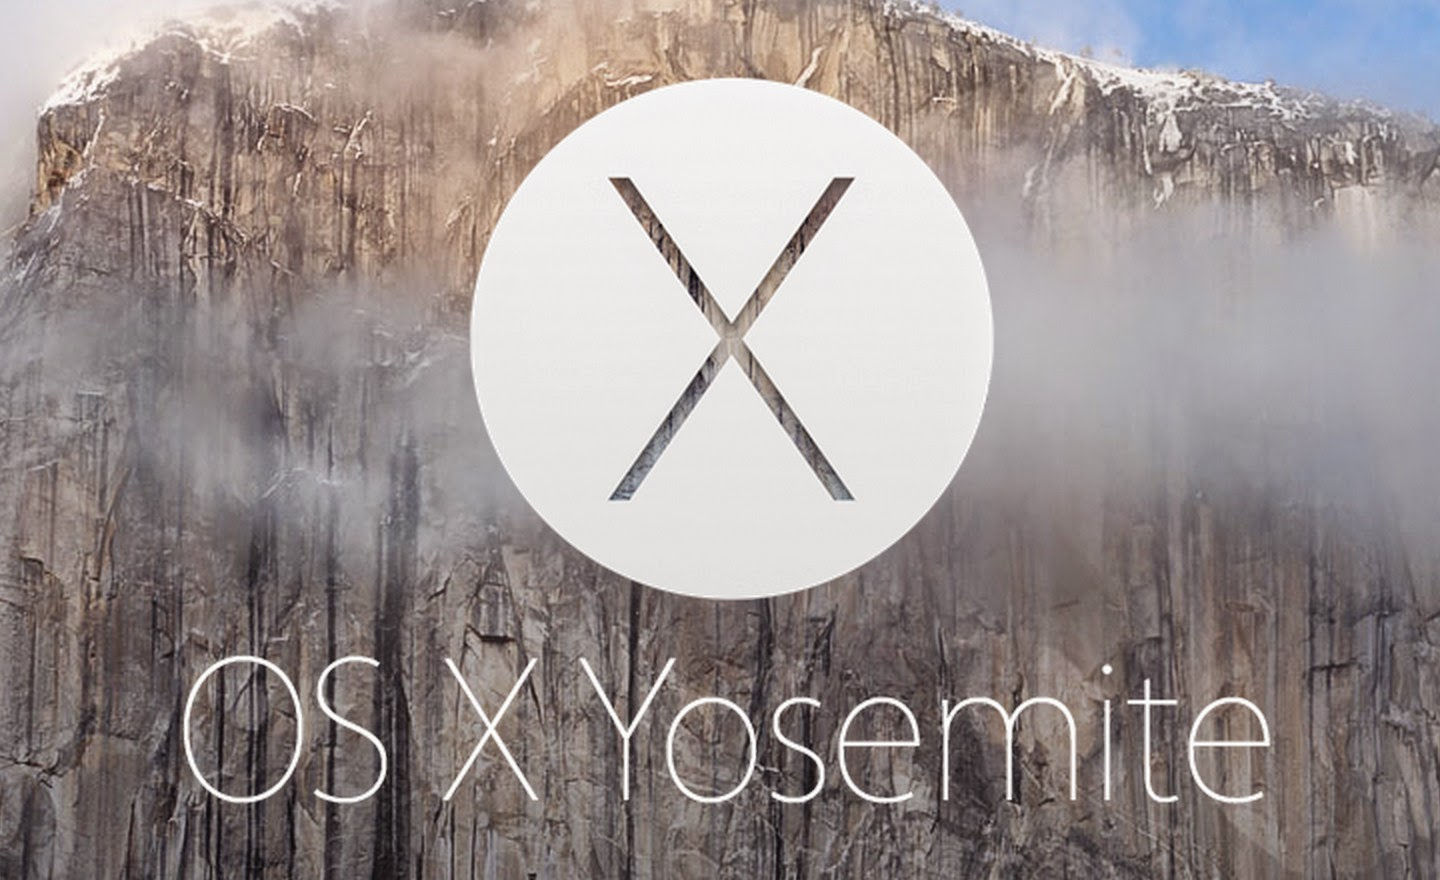 Apple releases the OS X Yosemite